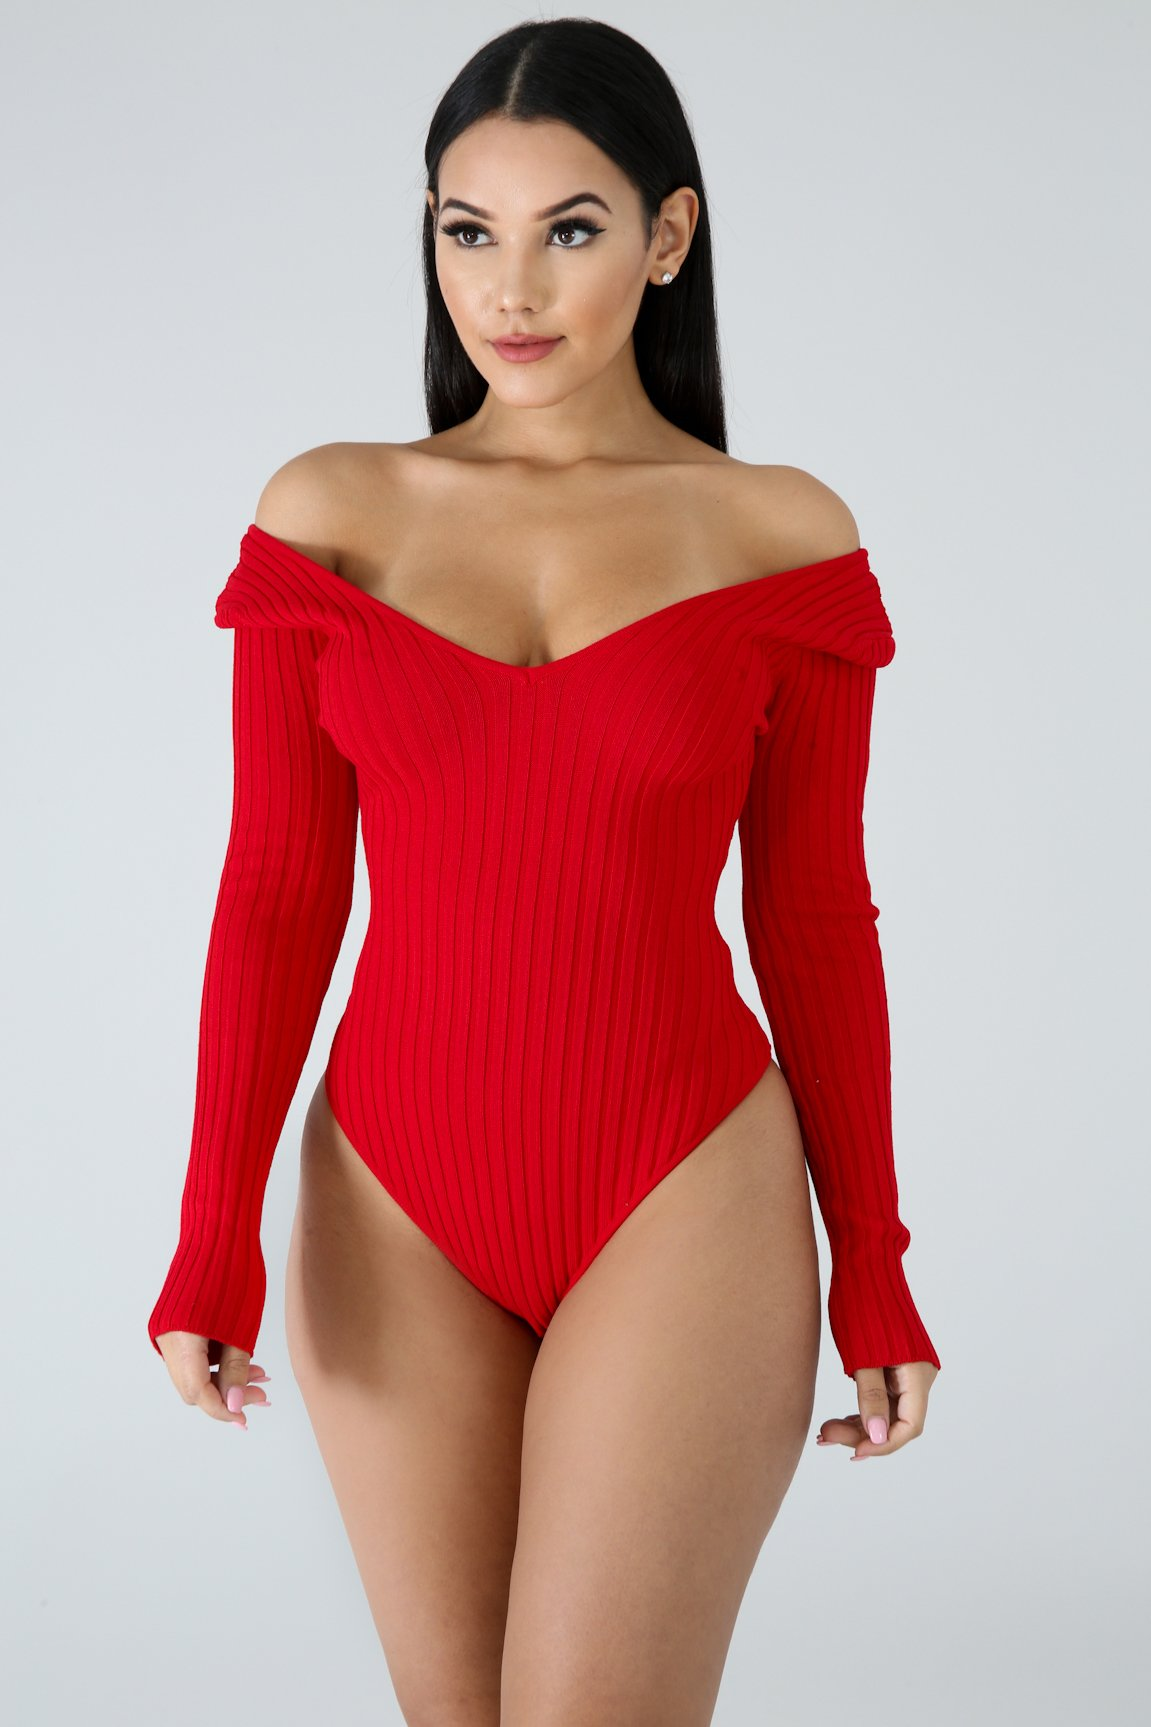 Load image into Gallery viewer, Plunging Knit Bodysuit - Red - Amor Black Boutique